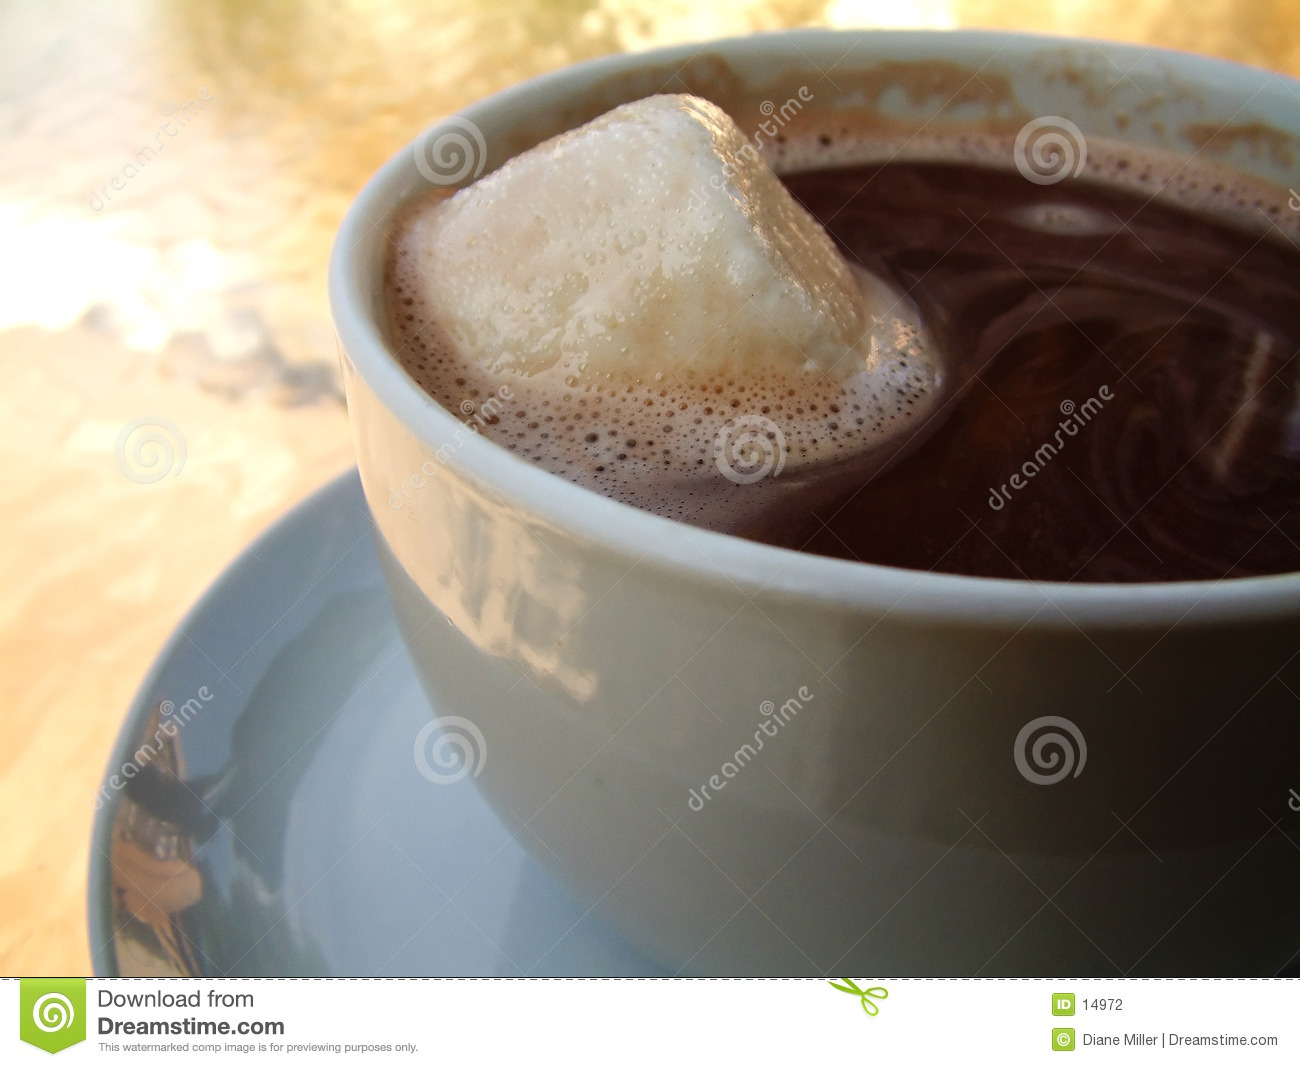 Chocolate quente, marshmallow extra